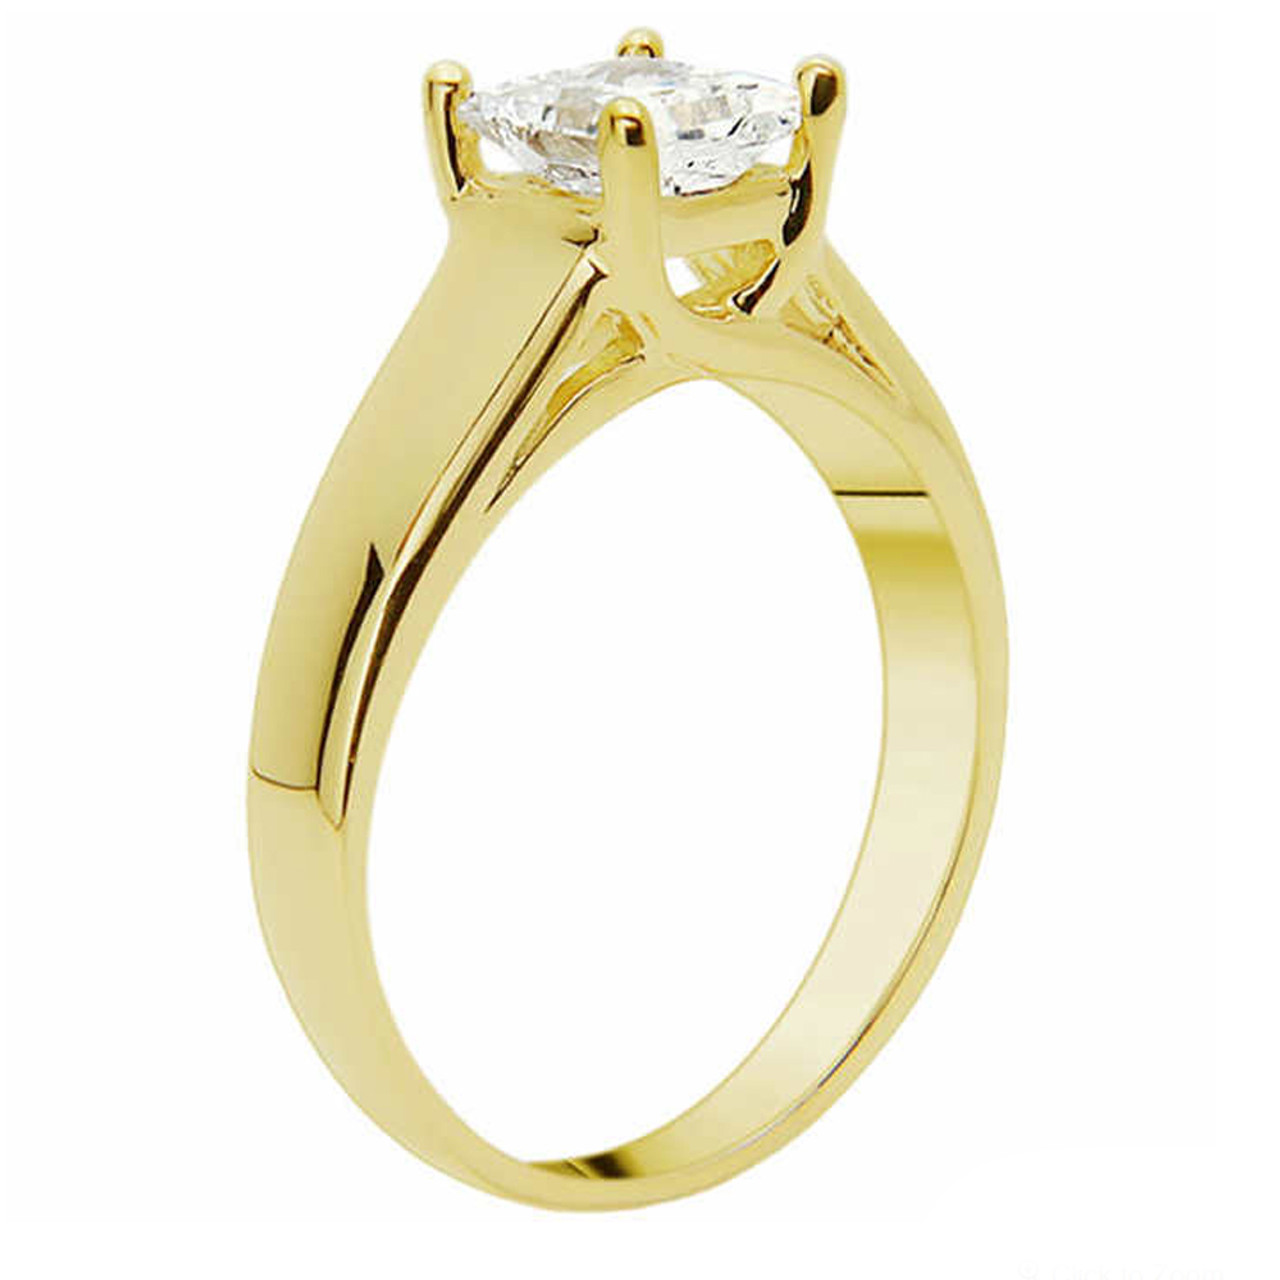 790a12a2576 1 CT Princess Cut Diamond Solitaire Engagement Ring 14k Yellow Gold